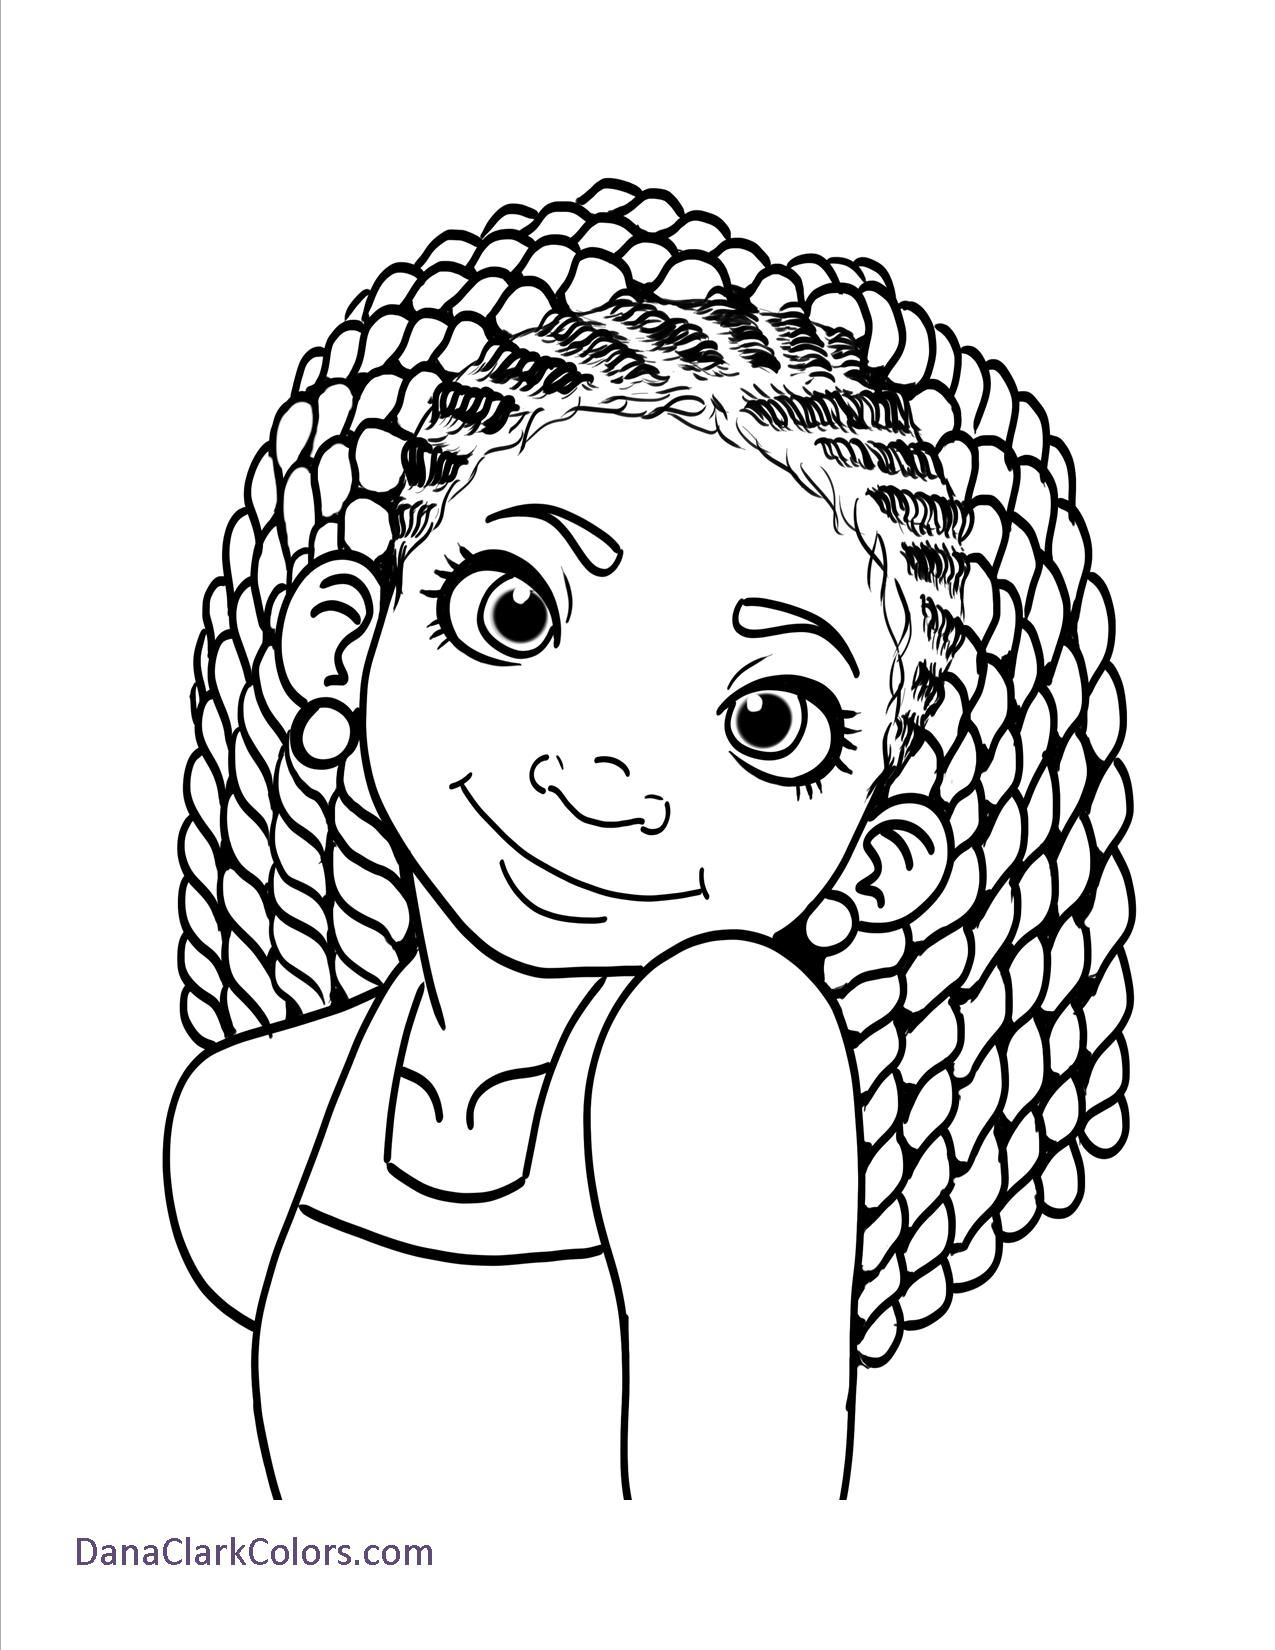 coloring pages for little kids - photo#43